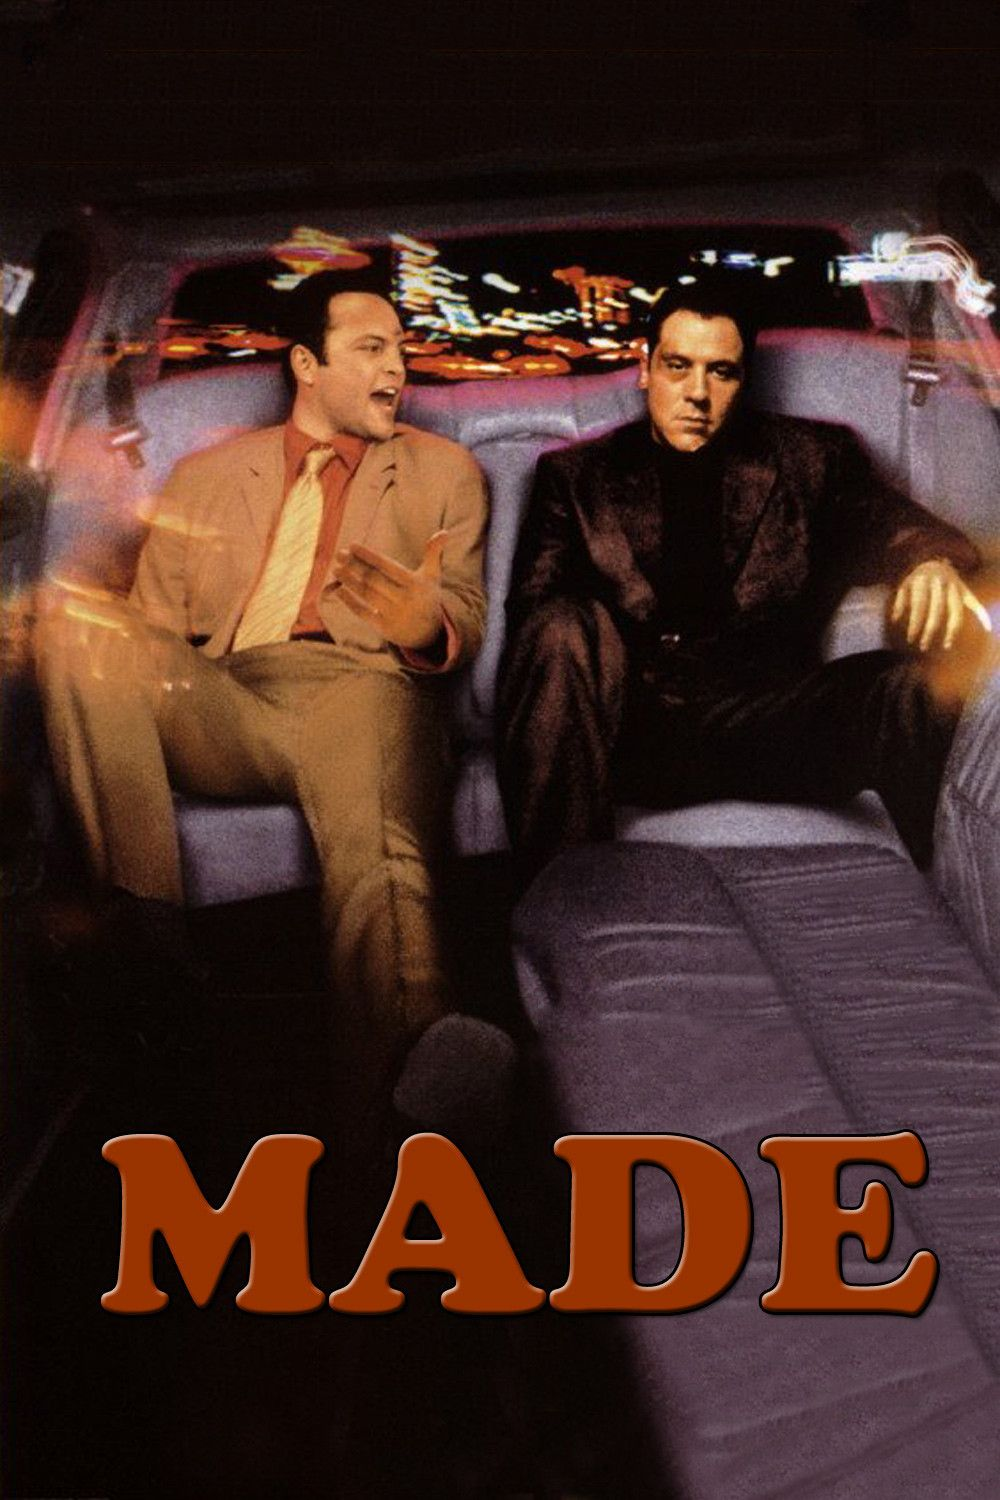 click image to watch Made (2001)